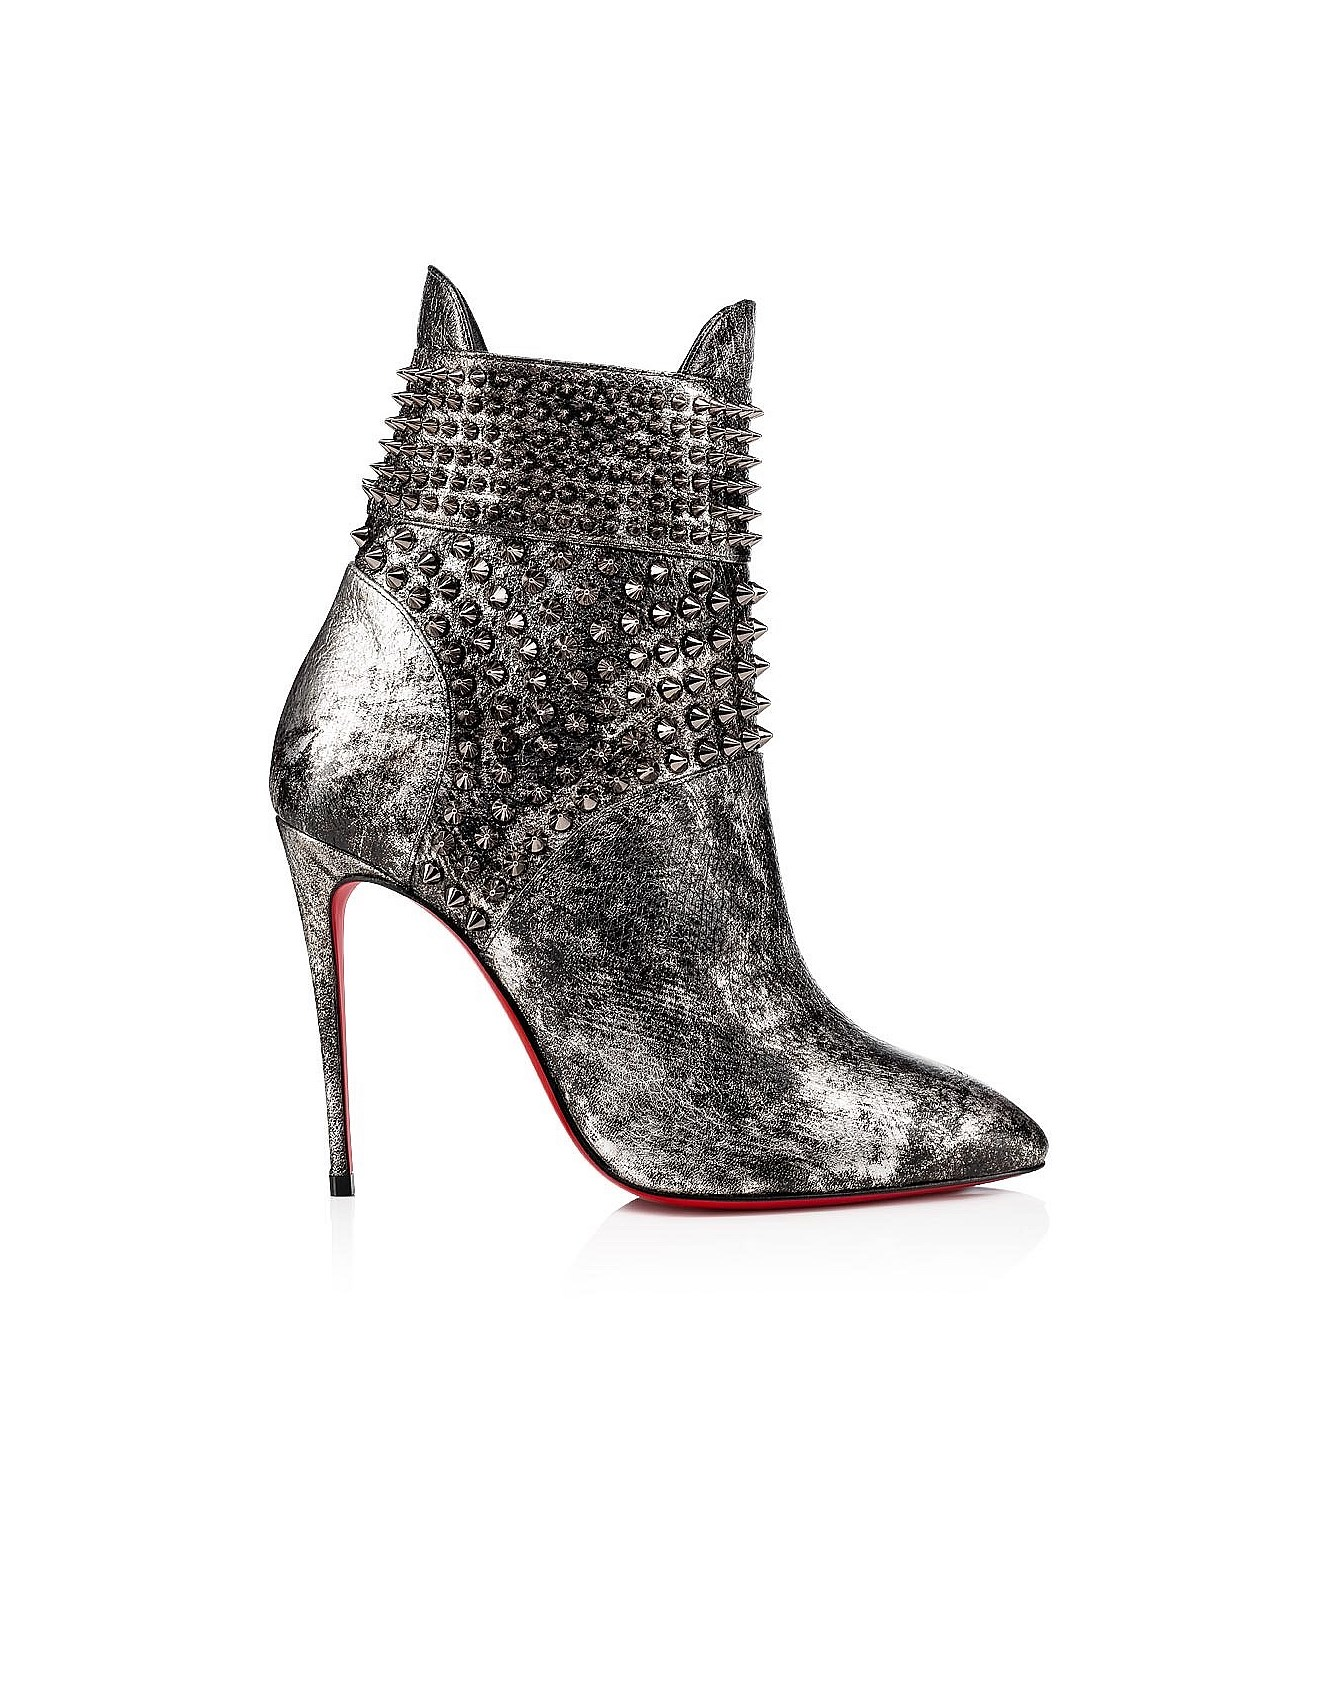 christian louboutin david jones sale